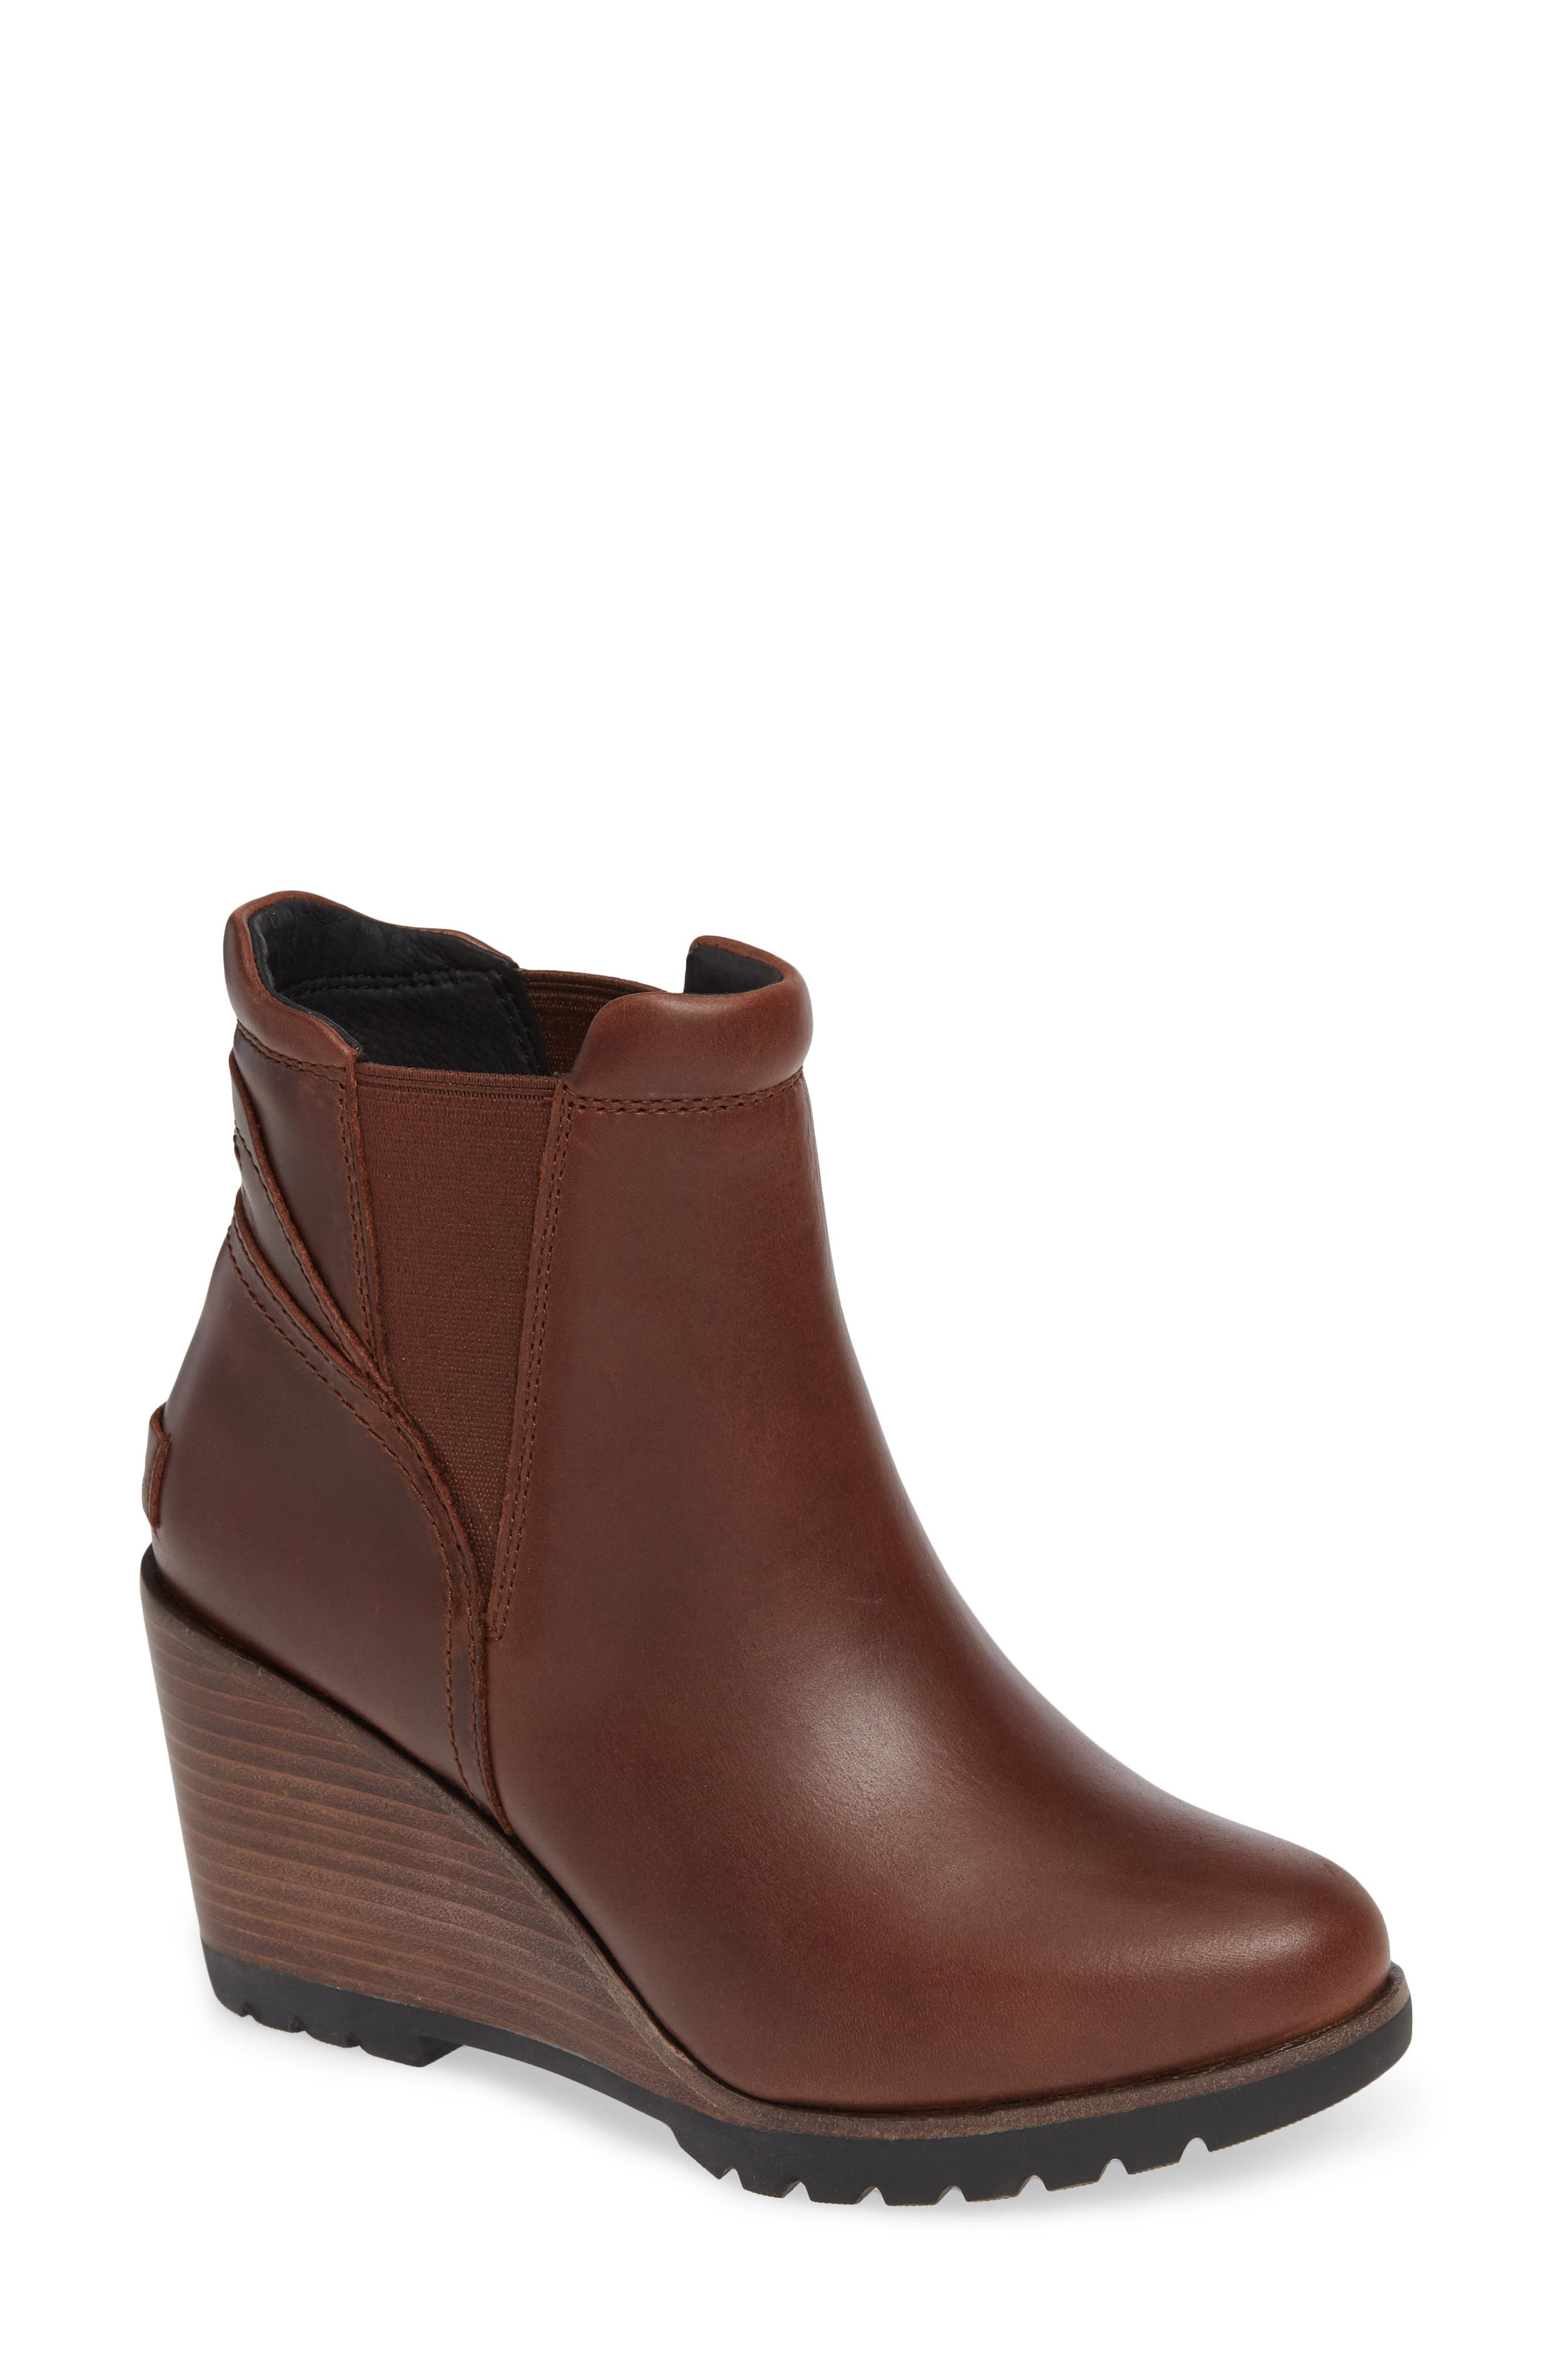 After Hours Chelsea Waterproof Boot,                             Main thumbnail 1, color,                             200